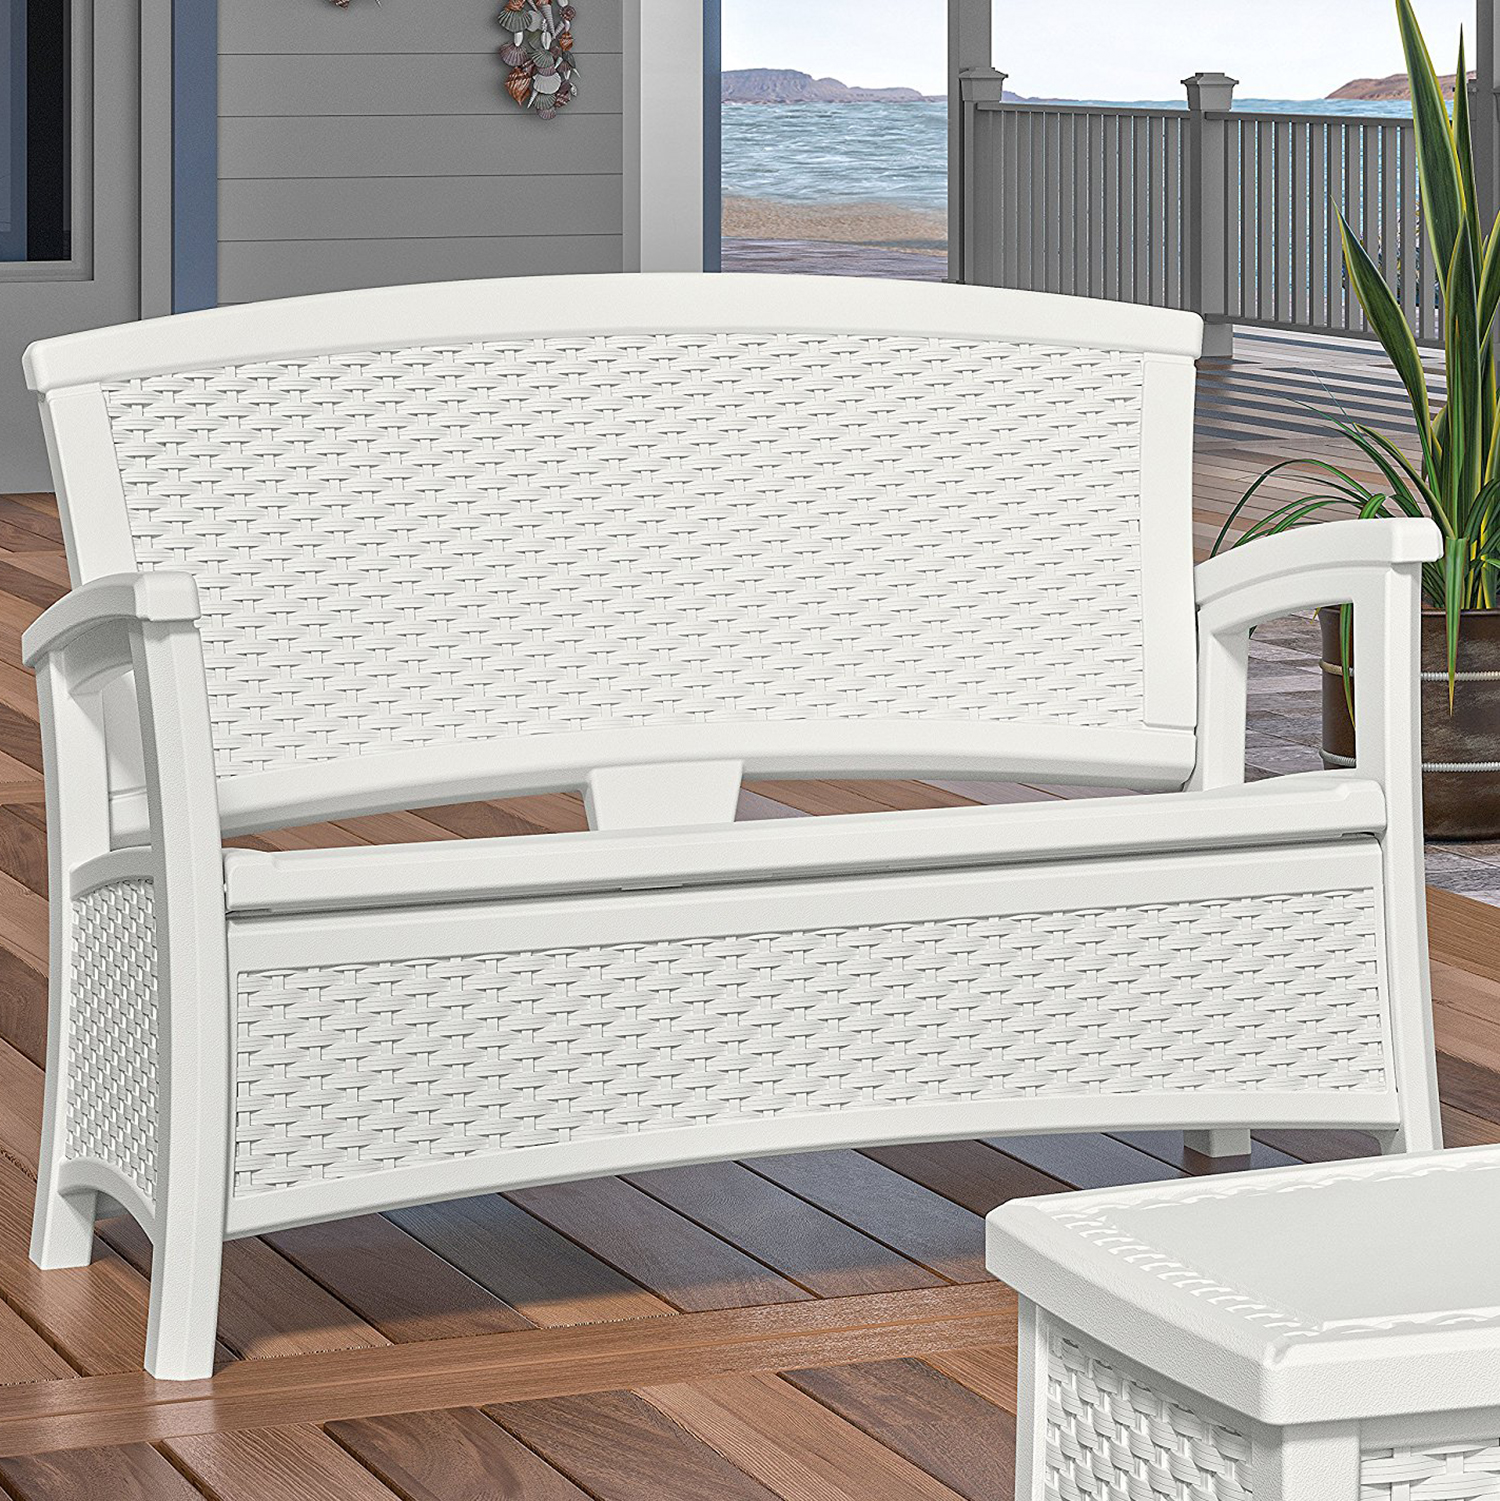 Suncast Elements Coffee Table With Storage White: Suncast Elements Resin Wicker Bench With Storage